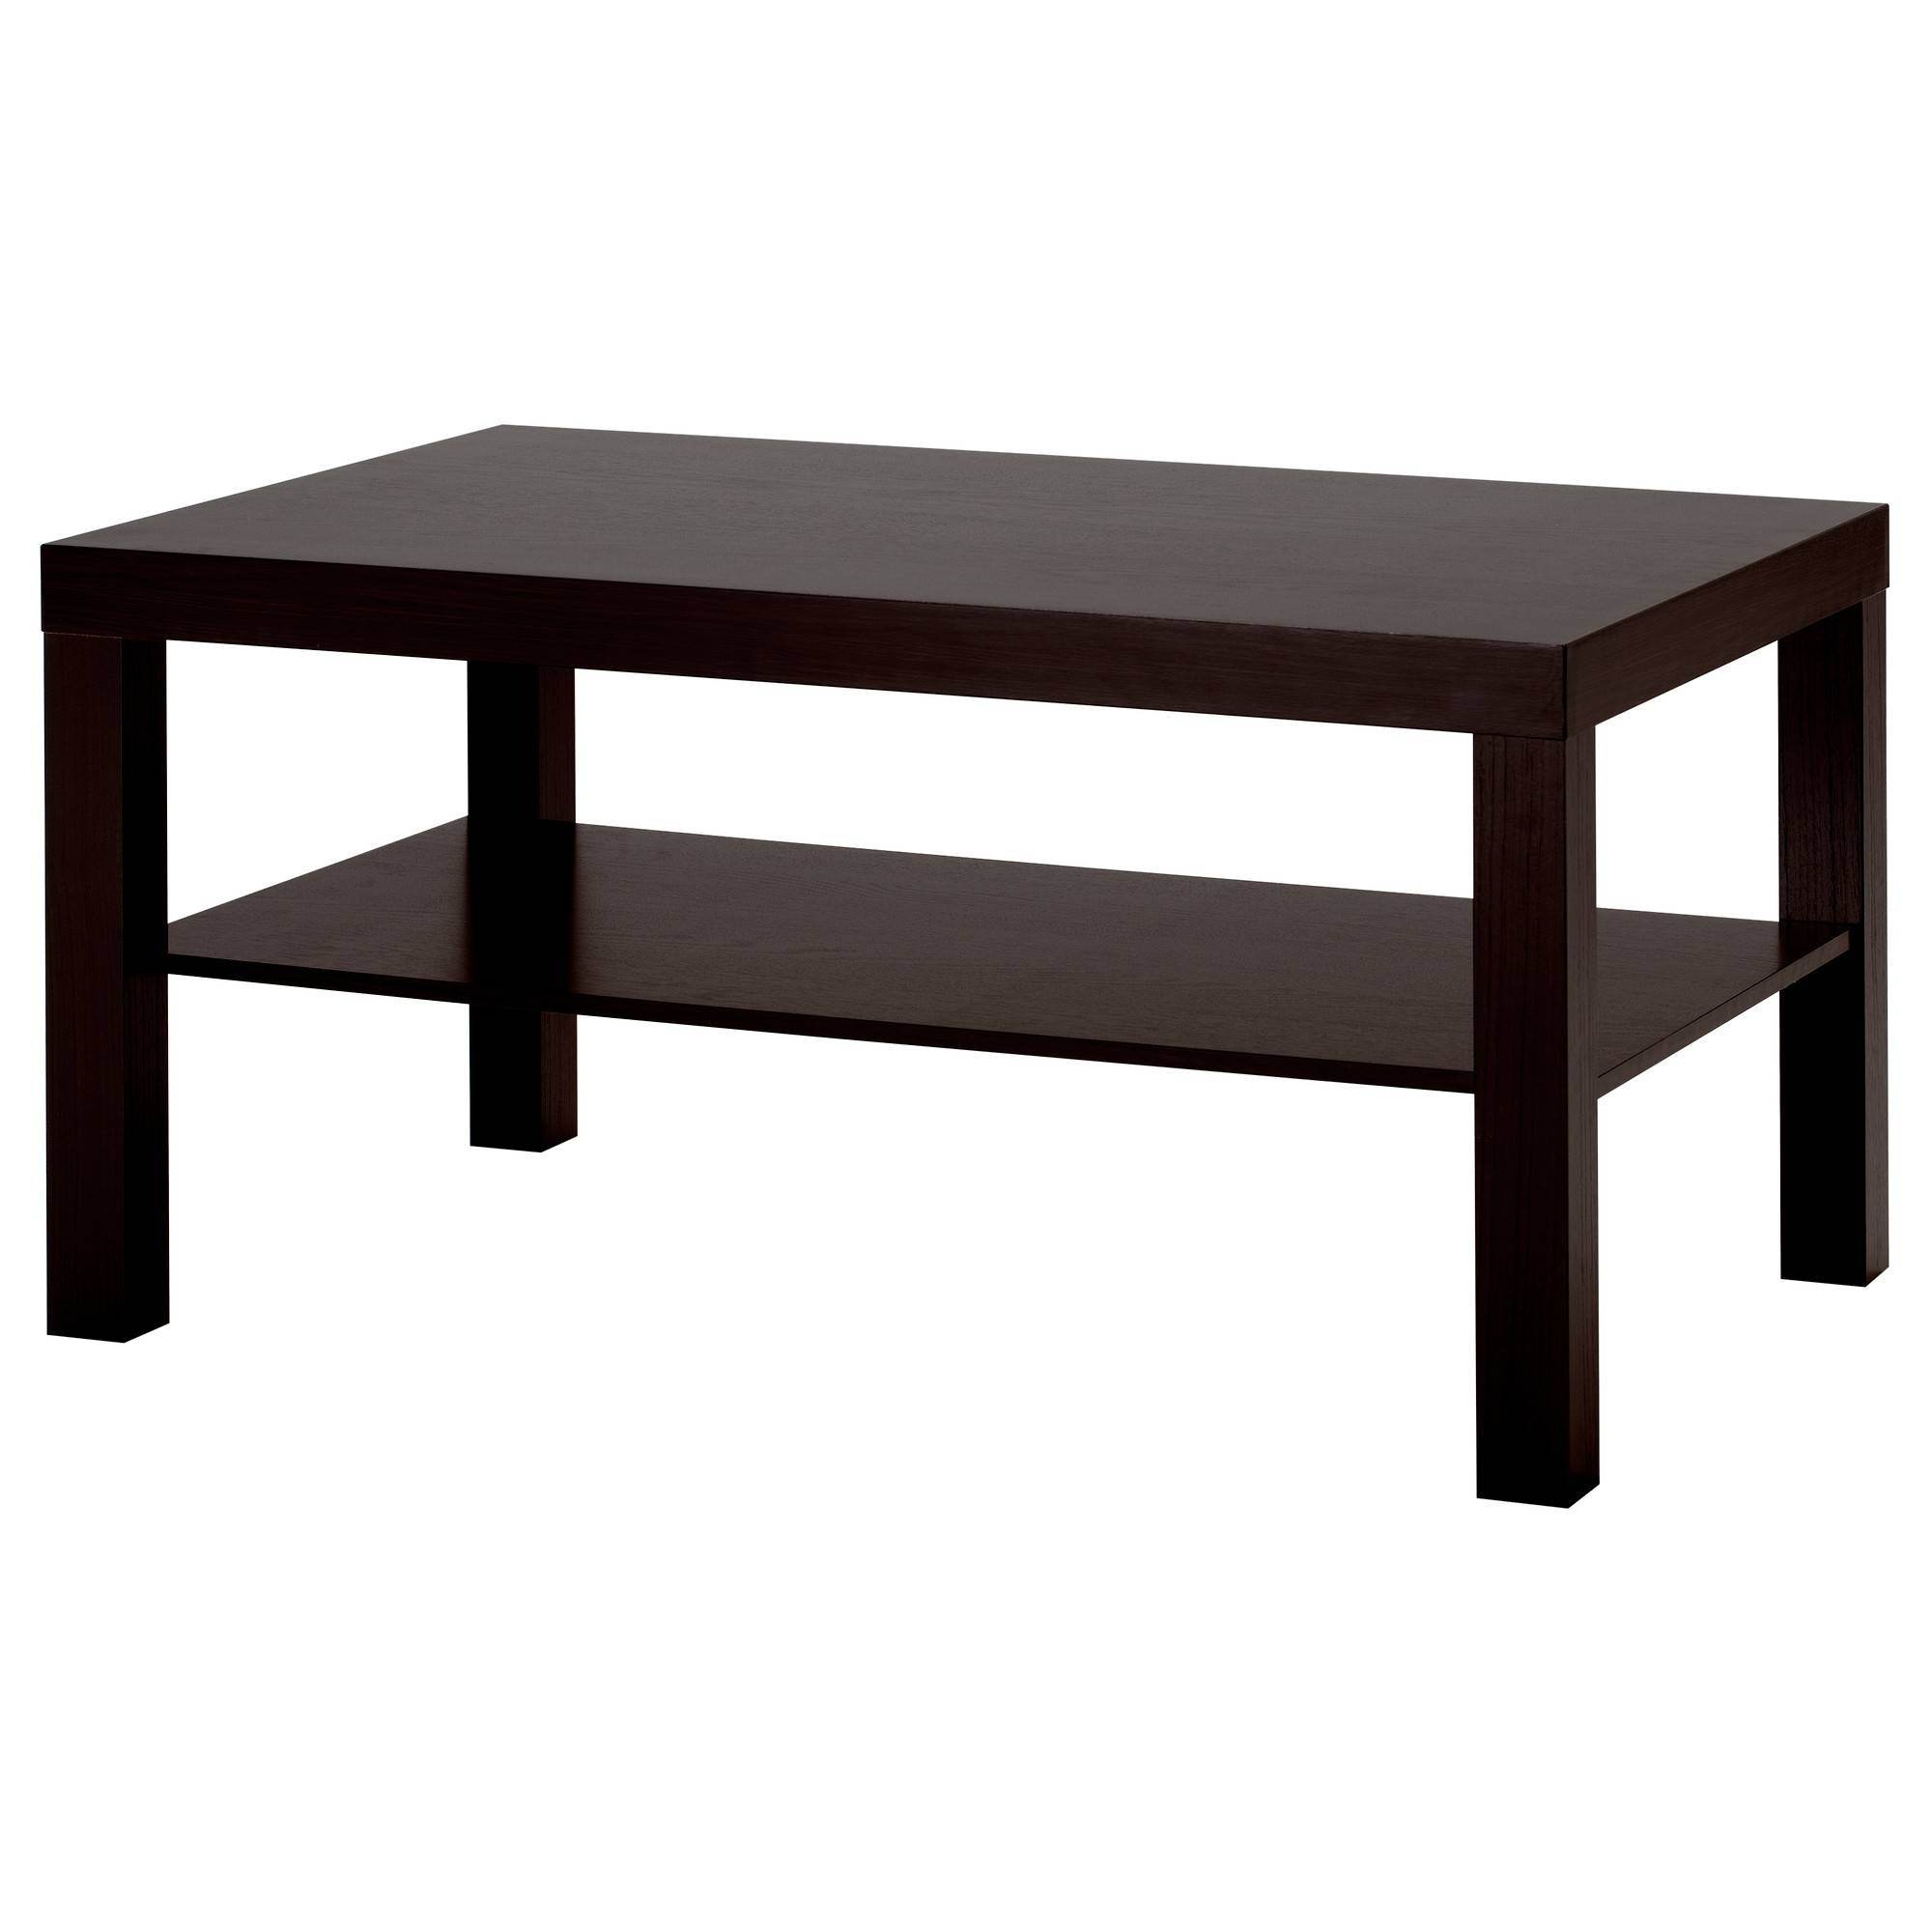 "Lack Coffee Table - Birch Effect, 35 3/8X21 5/8 "" - Ikea with regard to Desk Coffee Tables (Image 11 of 30)"